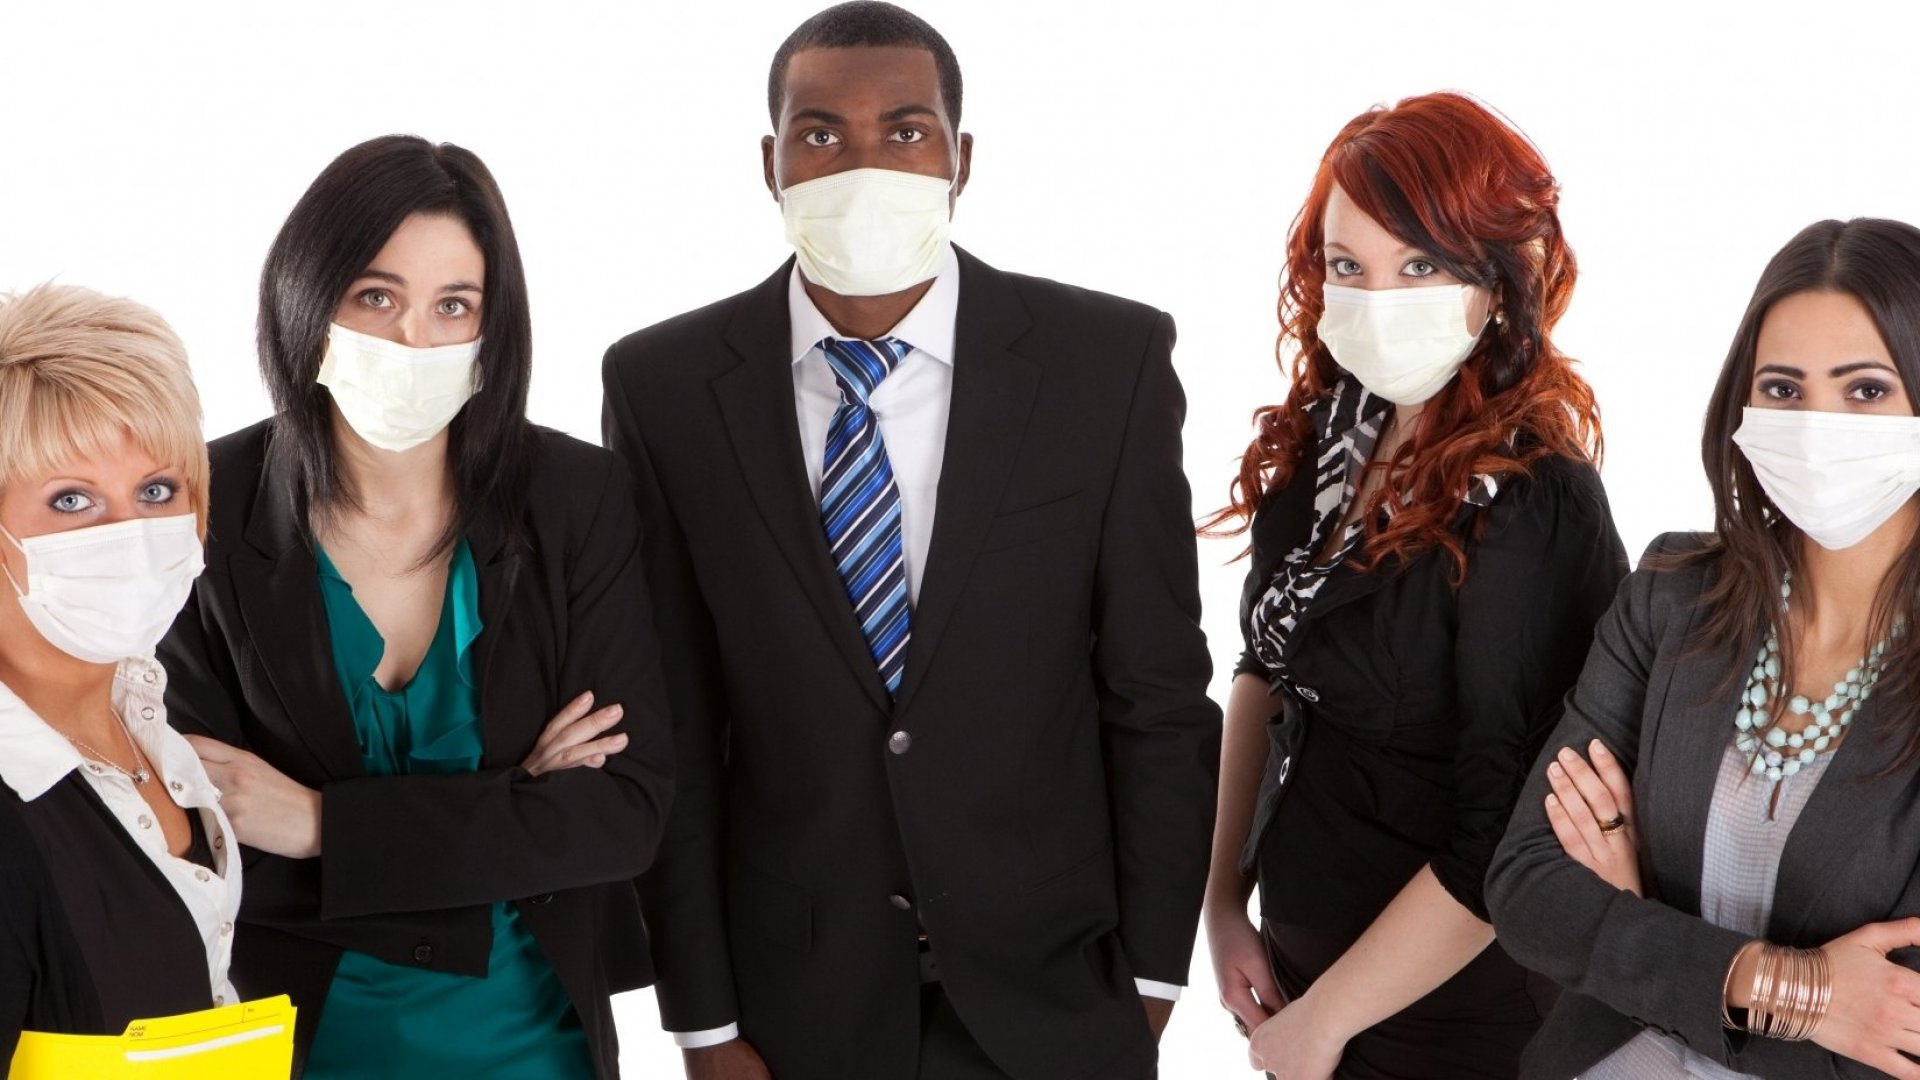 5 Types of Super Toxic People to Avoid at Work